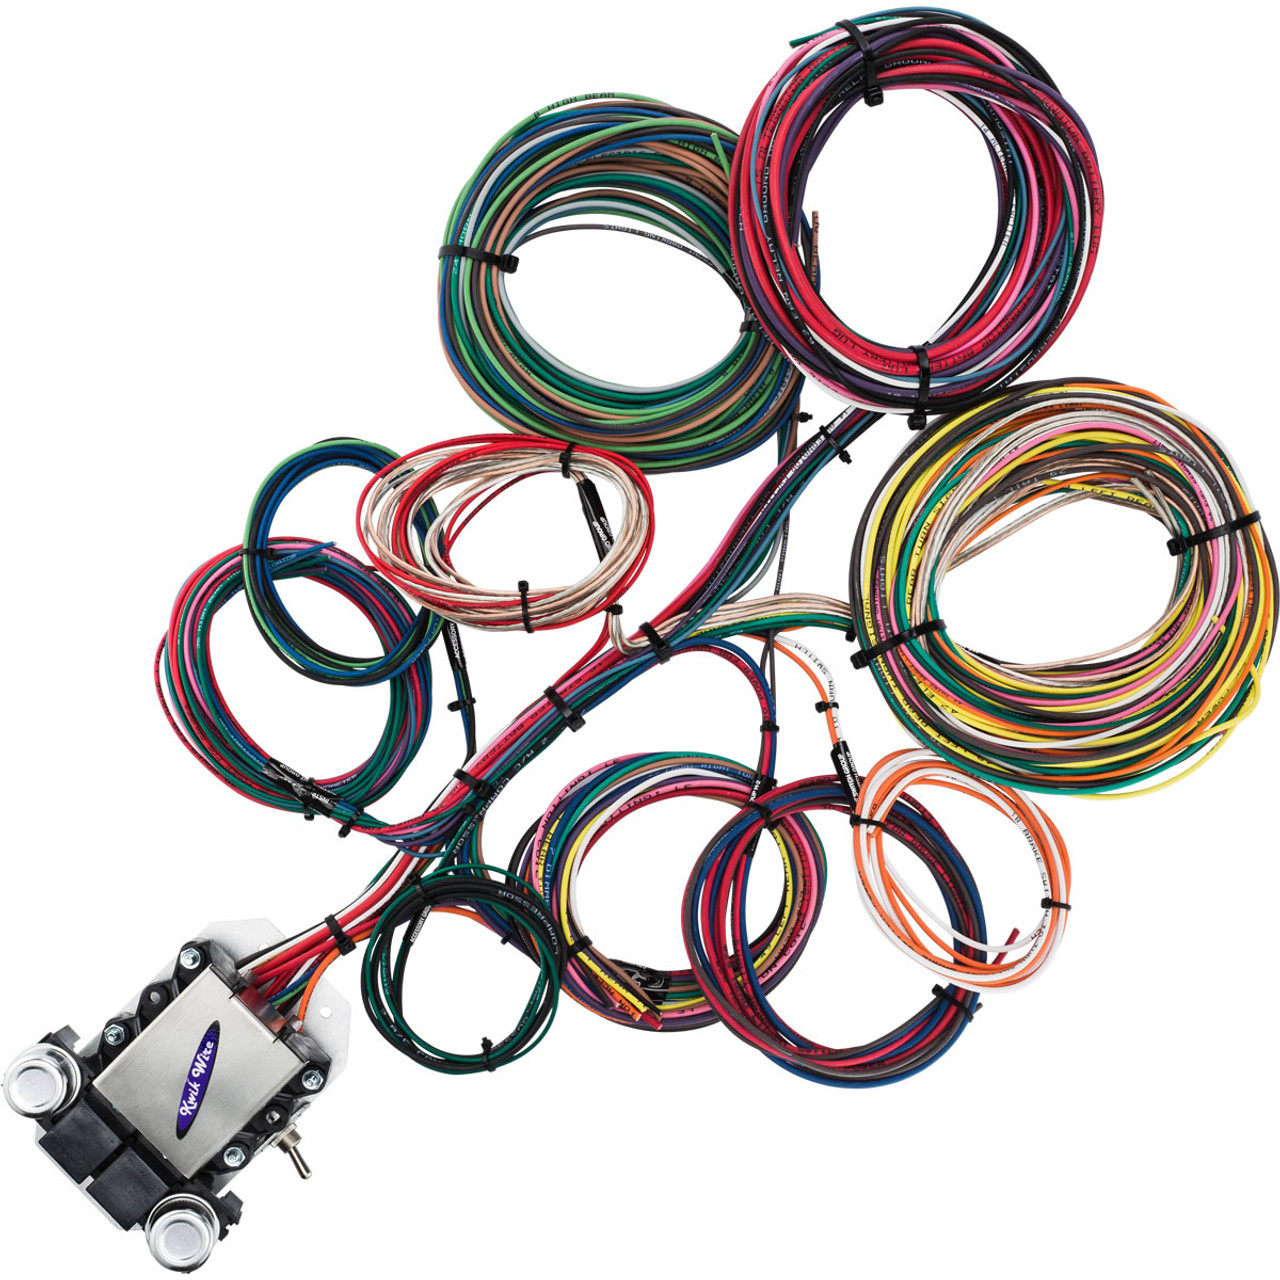 14 Circuit Wire Harness - KwikWire.com | Electrify Your Ride on turn signal capacitor, turn up txt, turn signal cruise control, turn signal connectors, turn signal troubleshooting, turn signals for rhino, simple turn signal schematic, turn signal timer, turn signal repair, turn signal switch schematic, turn signal relay, turn signals chrome glow, turn signals wiring in old cars, 1991 ford explorer schematic, harley turn signal schematic, turn signal fuse, signal generator schematic, turn signal hood, signal flasher schematic, turn signal wire,